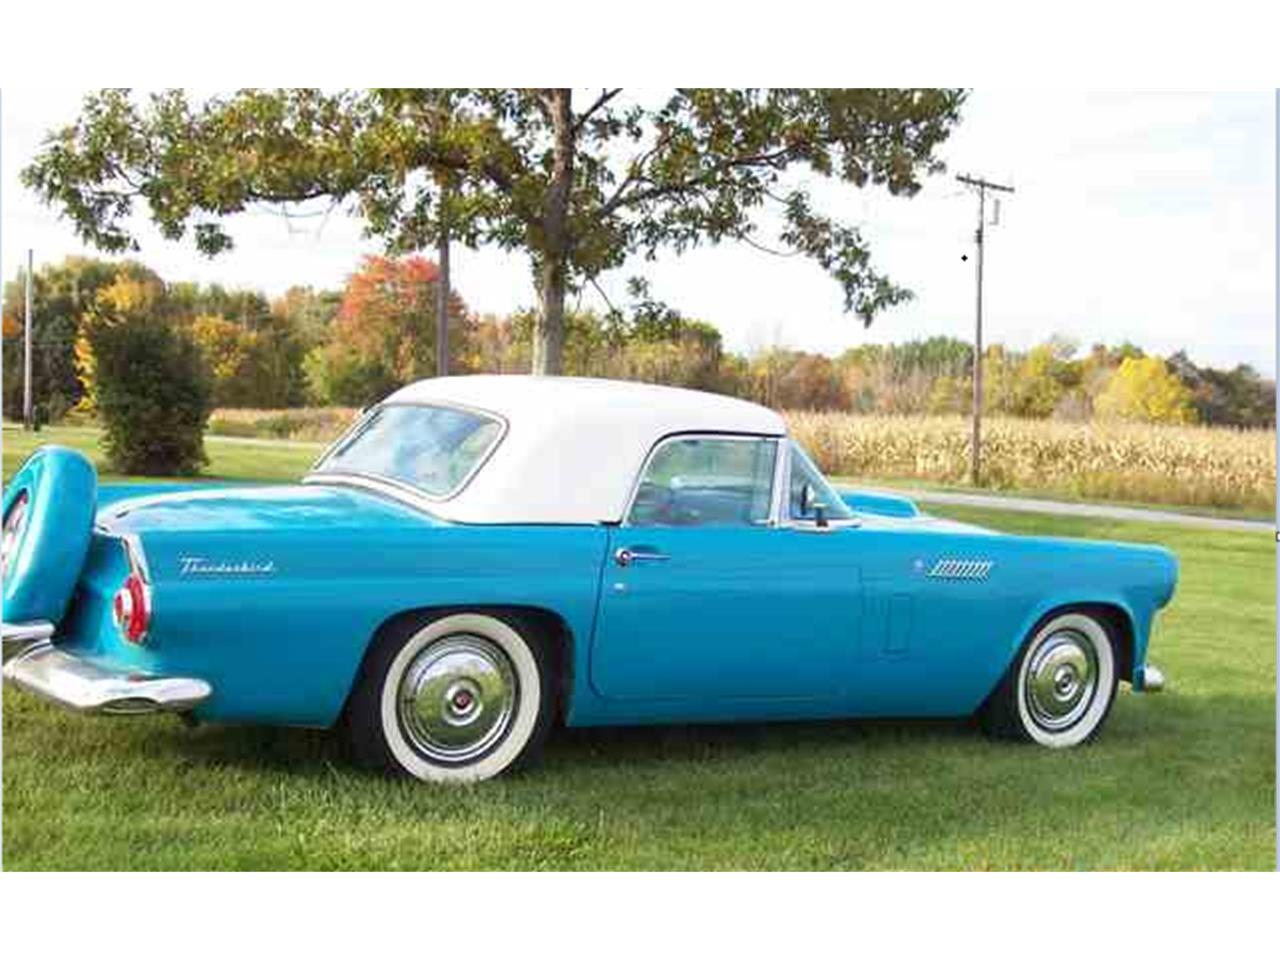 Large Picture of Classic '56 Ford Thunderbird located in Michigan - $30,000.00 - G8UX